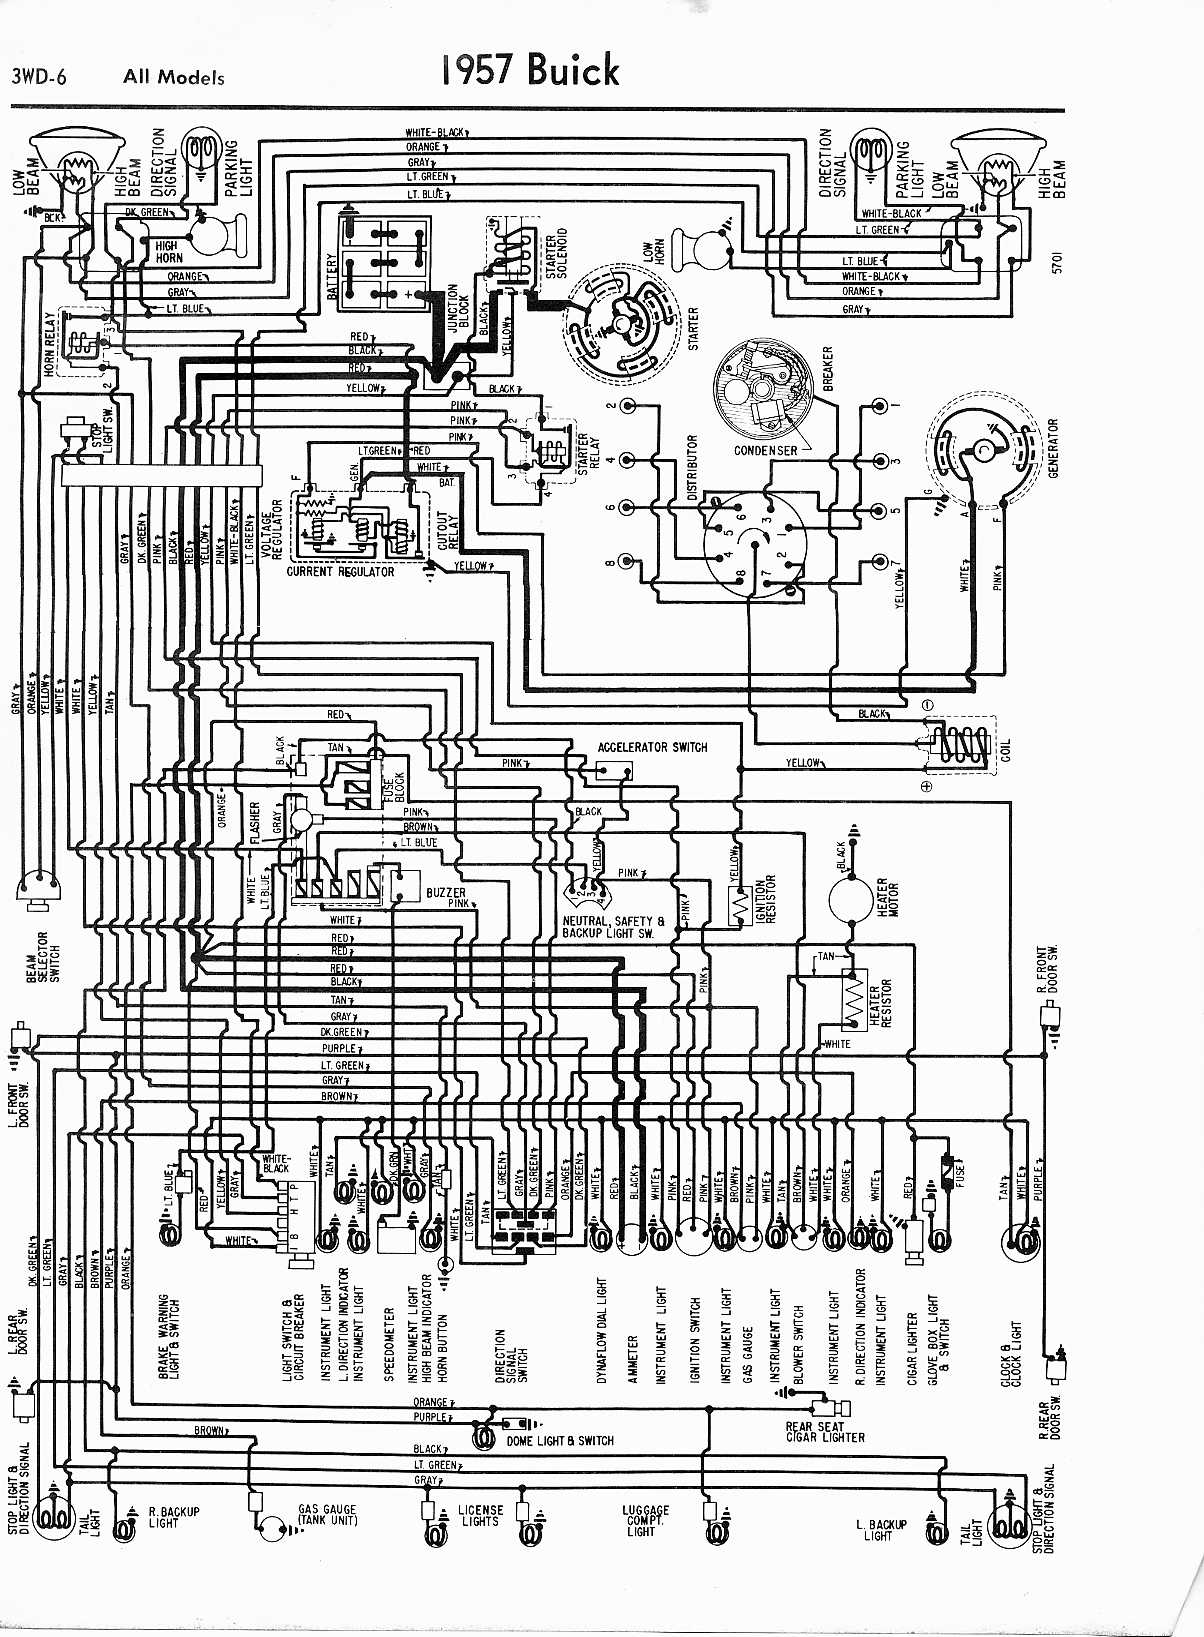 Engine Harness Wiring Diagr Change Your Idea With Diagram Chevy Trailblazer Buick Simple Rh 6 Terranut Store 3406e